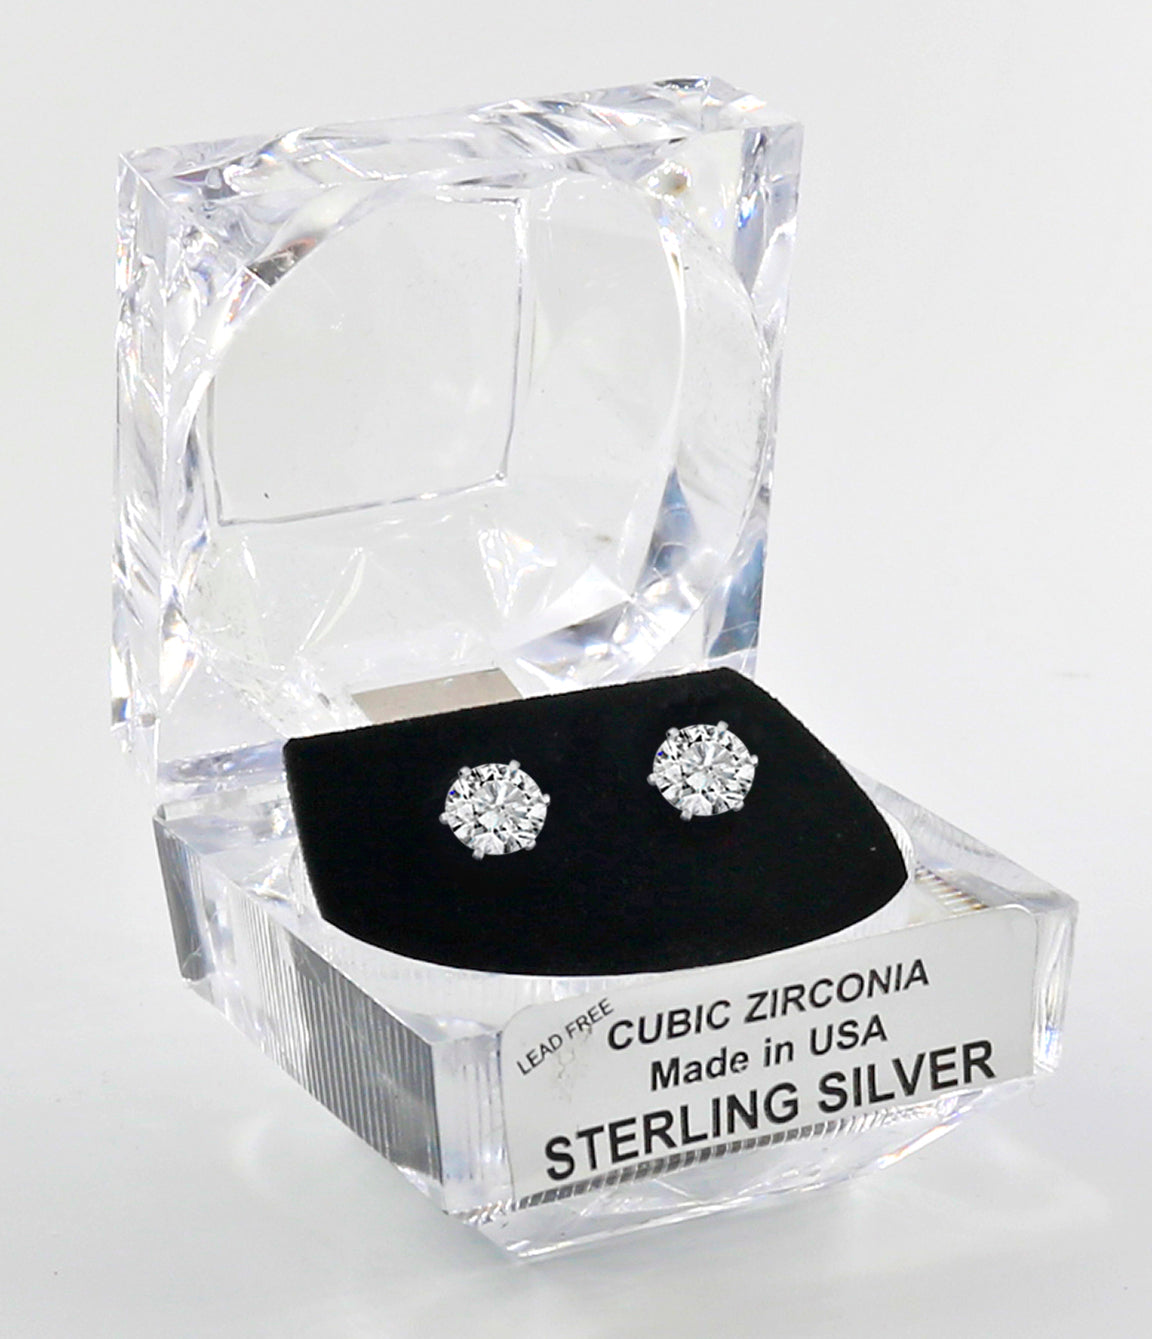 Sterling Silver Round Cut Cubic Zirconia Earrings with Crystal Box 2 carat (6 1/2 MM)